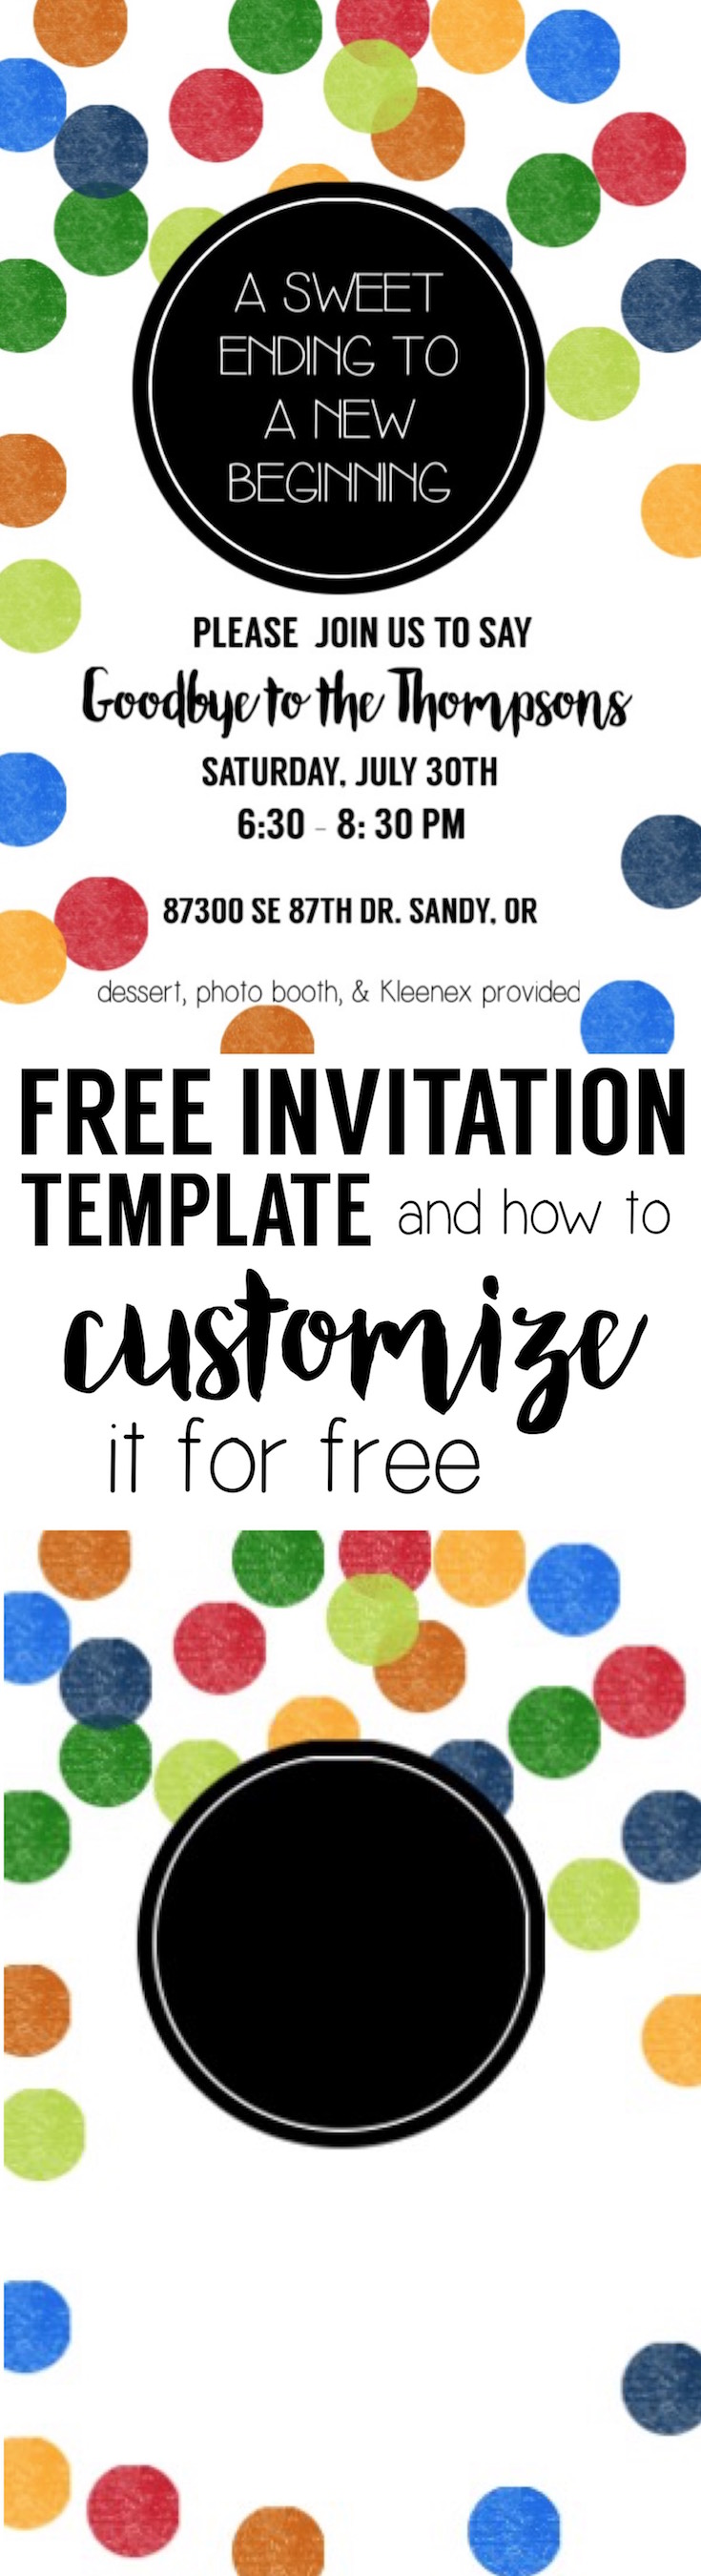 Colorful Party Invitation Free Template. Customize this invite easily with free online software and our tutorial. Cute rainbow color polka dots.